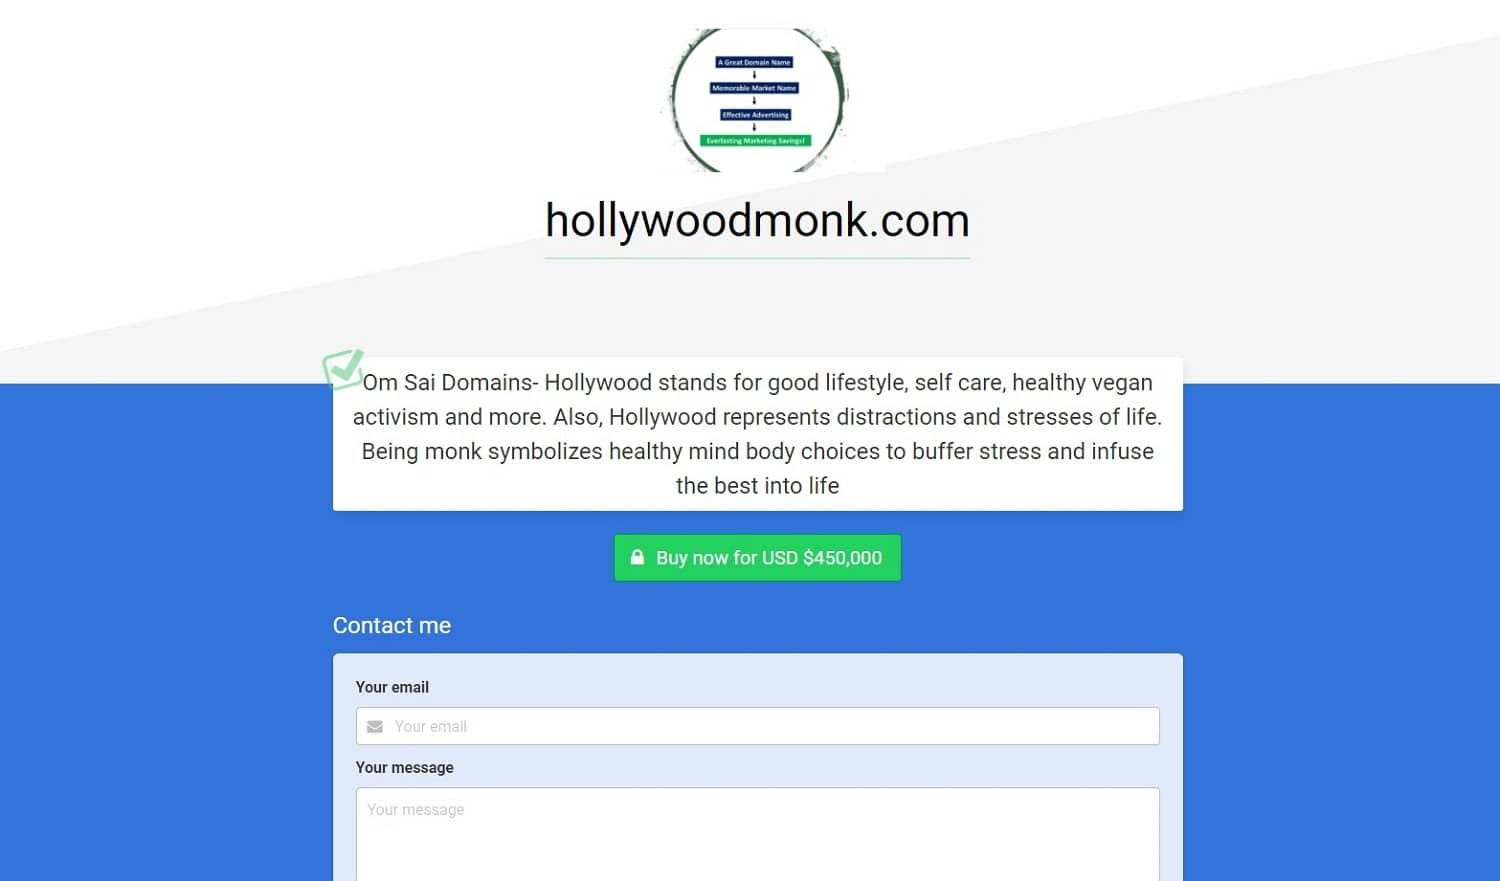 hollywood monk parked domain for sale